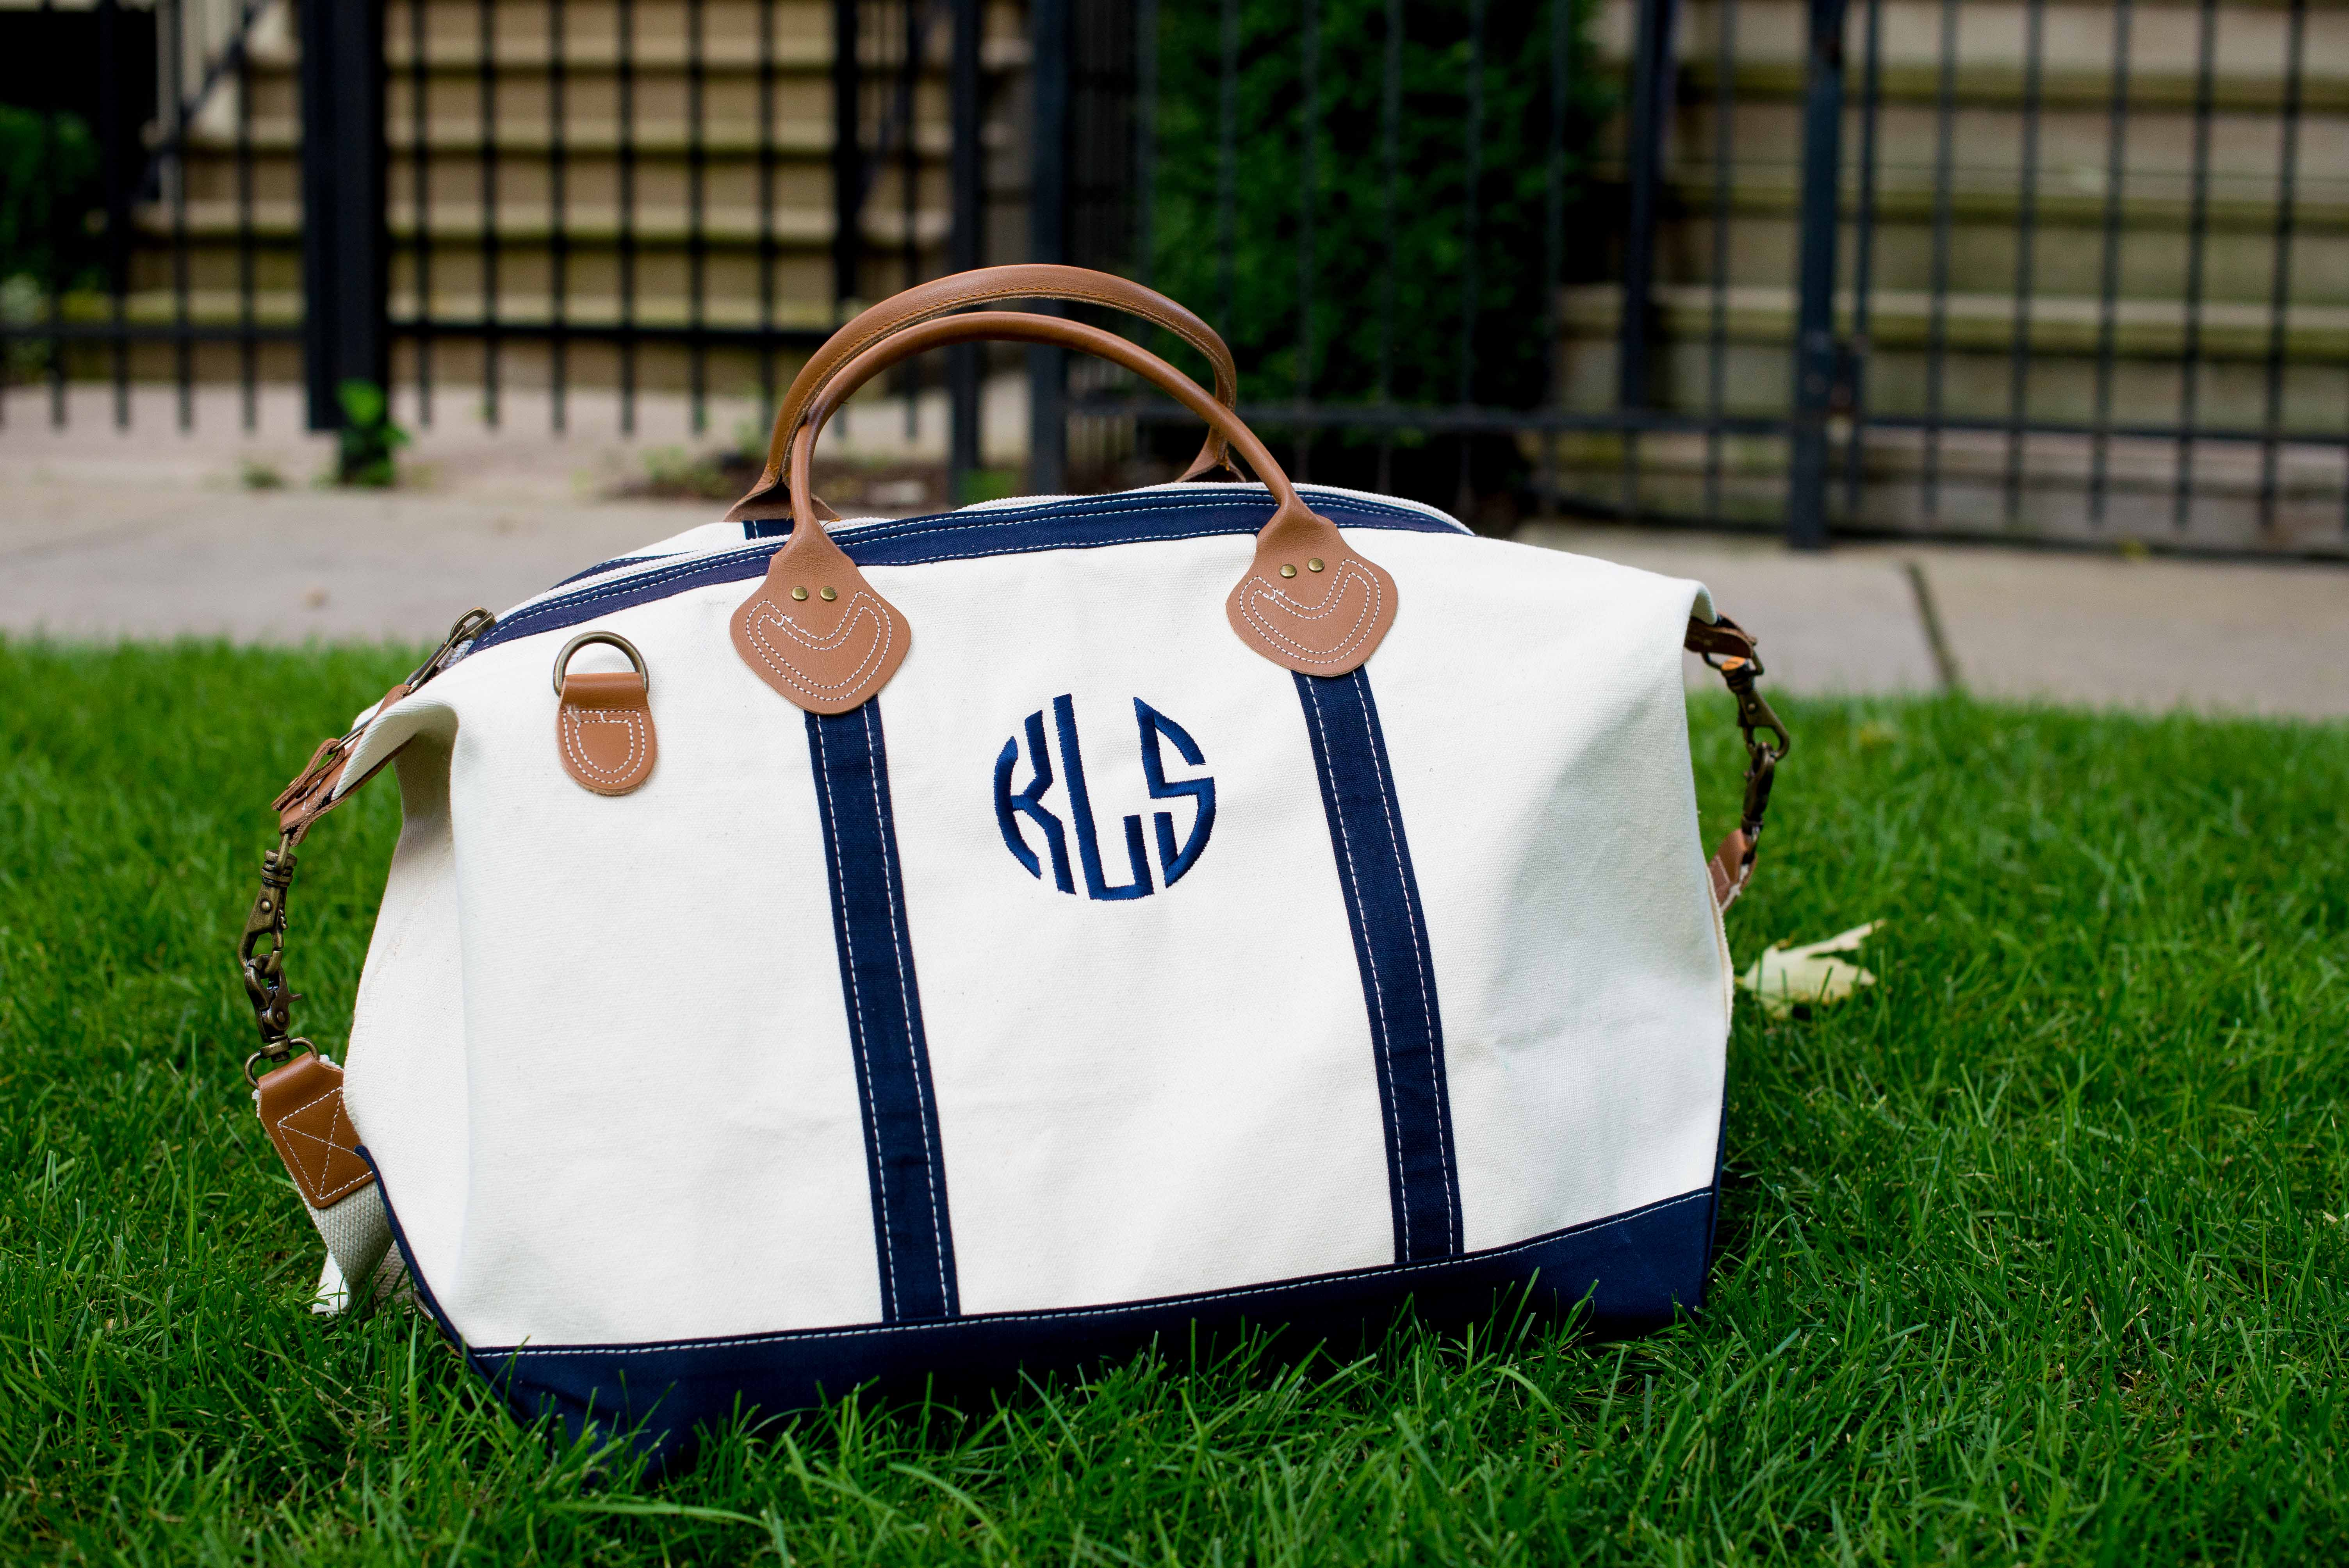 92bea5437b The Monogrammed Duffle Bag - Kelly in the City